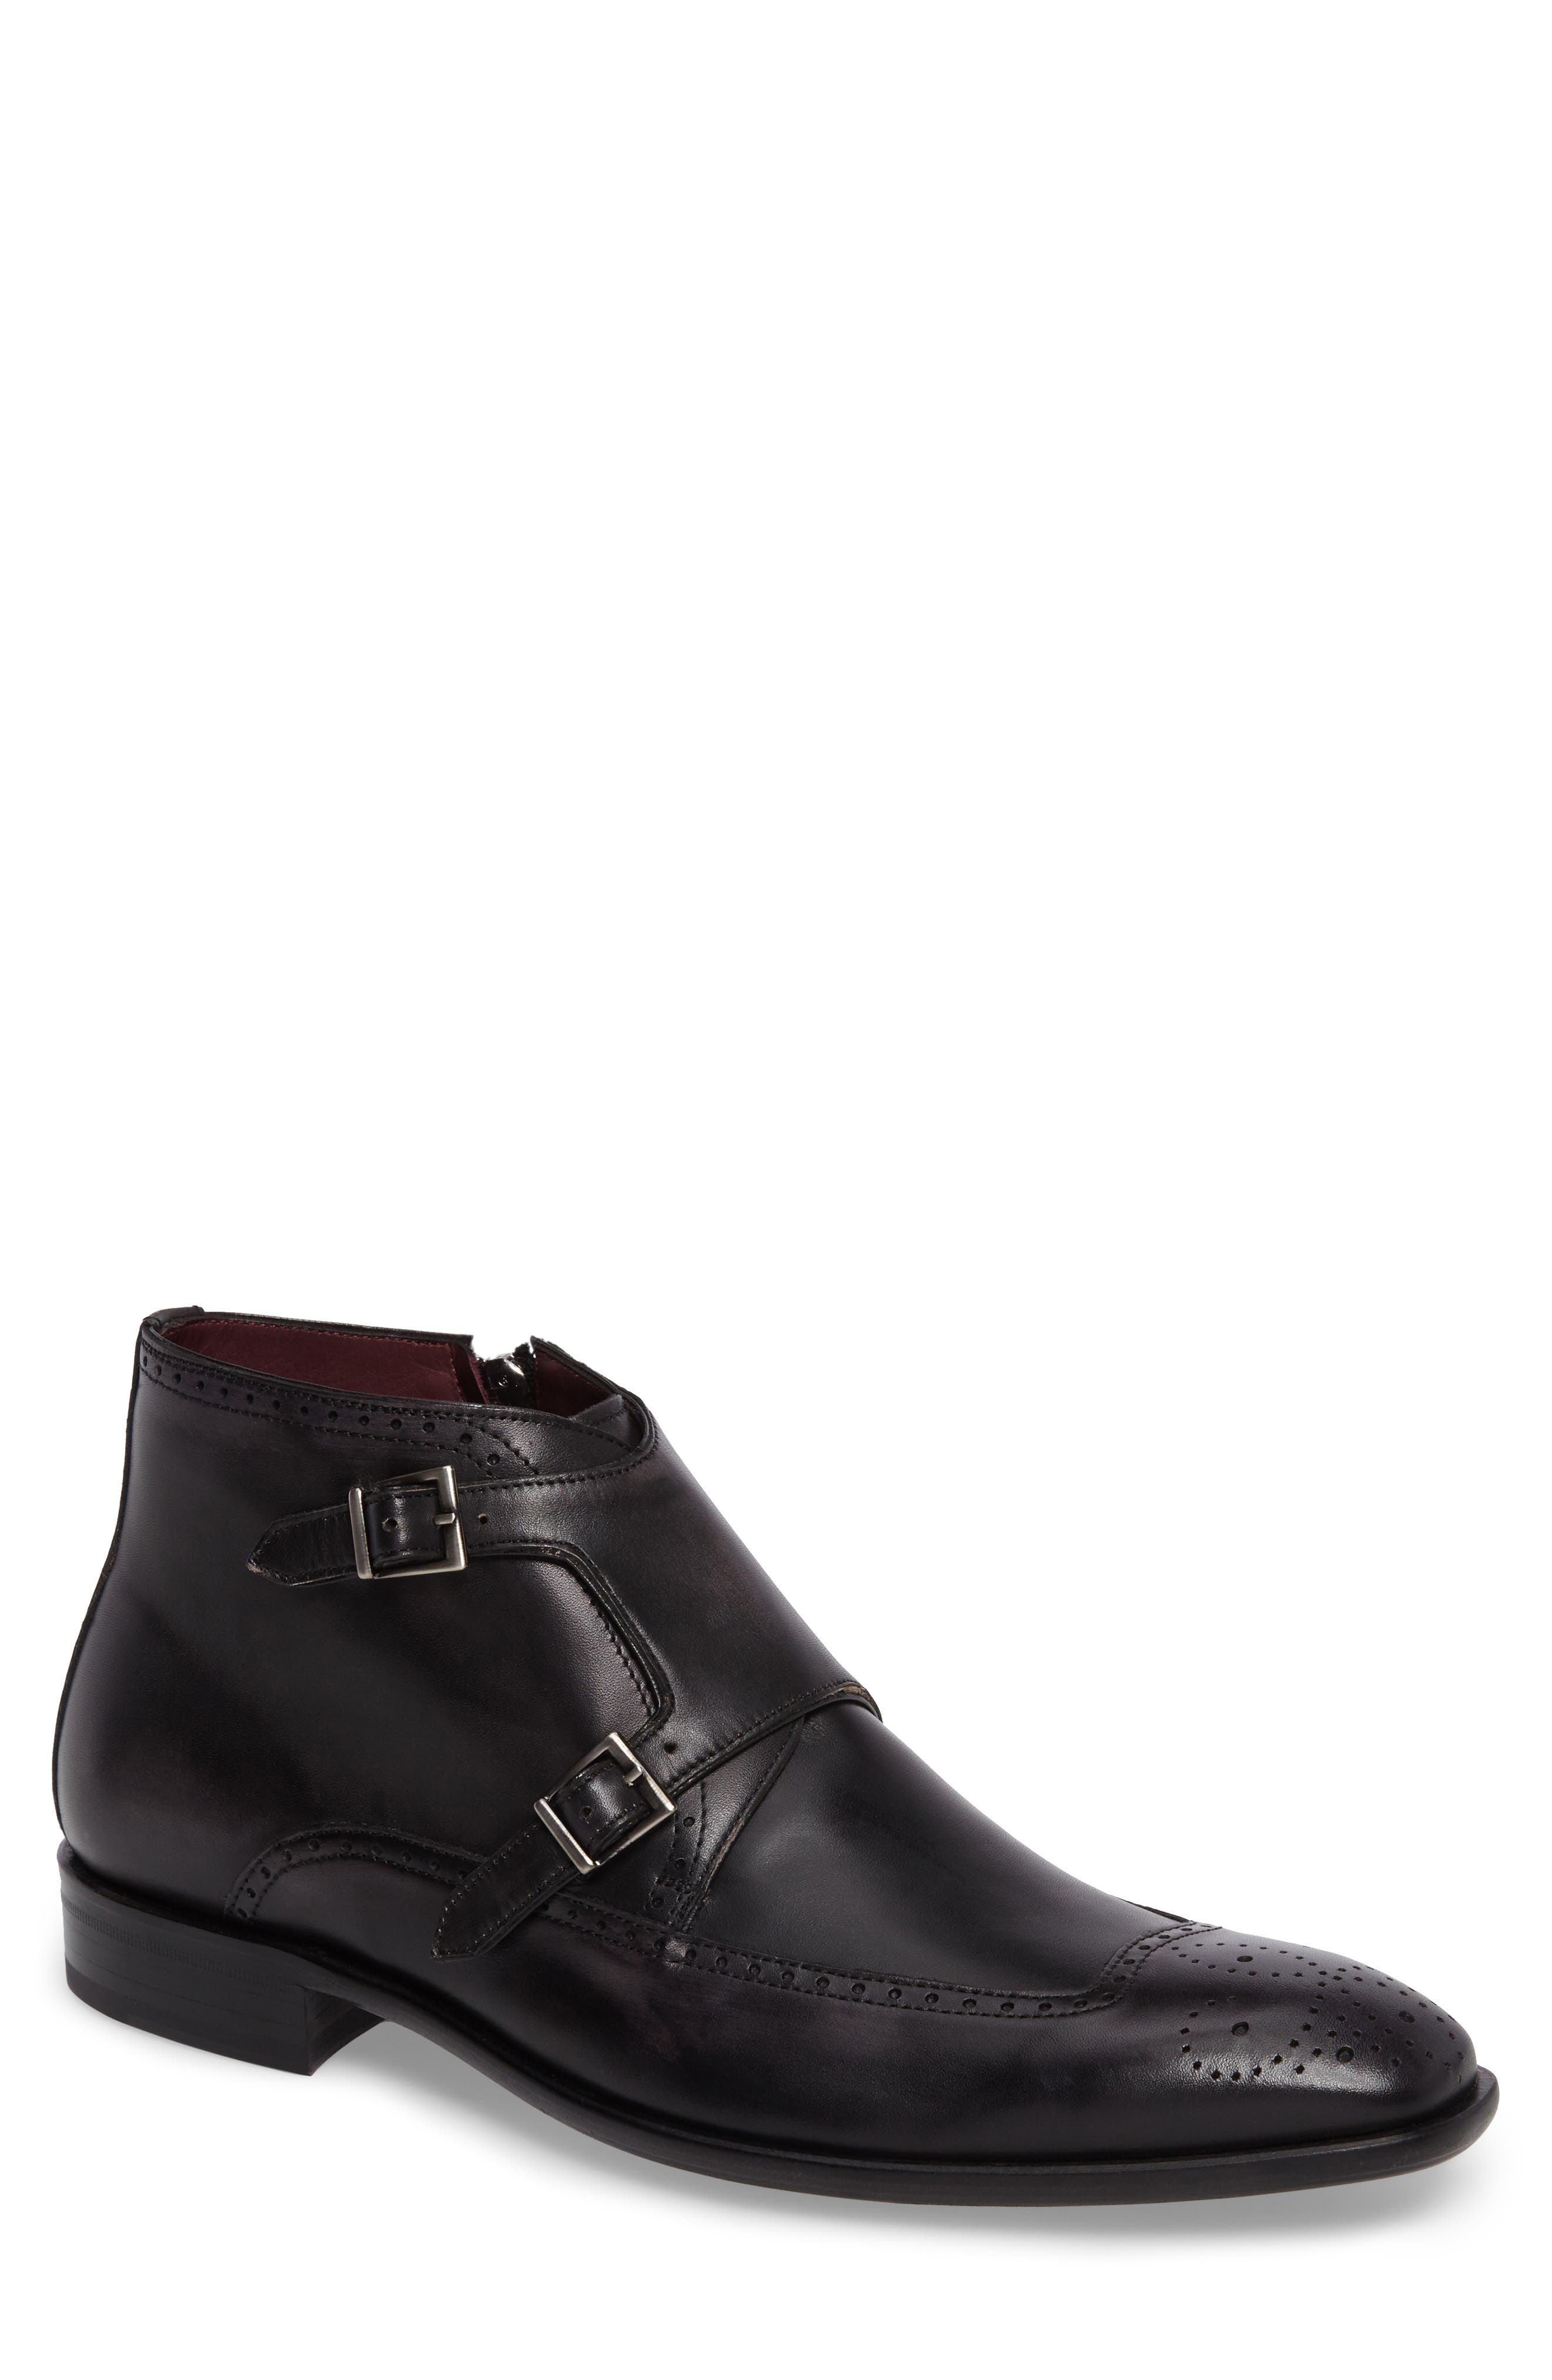 Taberna Double Monk Strap Boot,                             Main thumbnail 1, color,                             GRAPHITE LEATHER